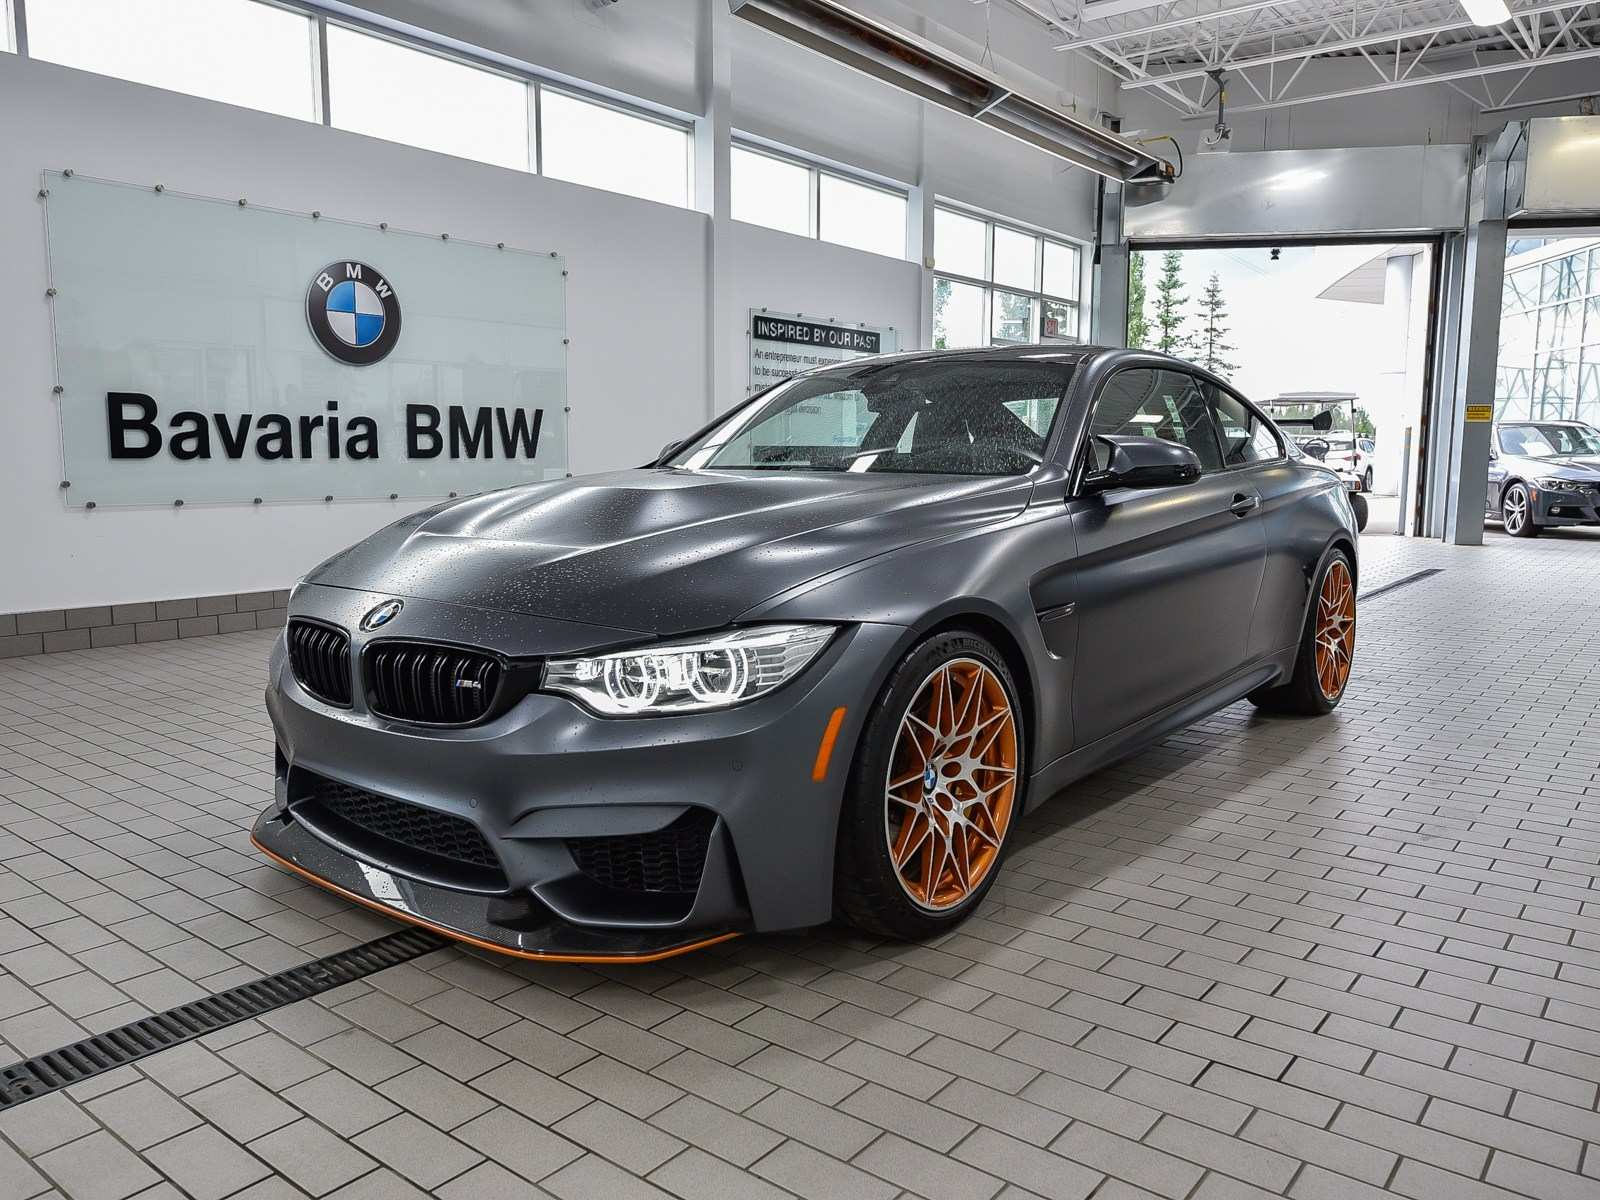 41 New 2019 BMW M4 Gts Price And Release Date